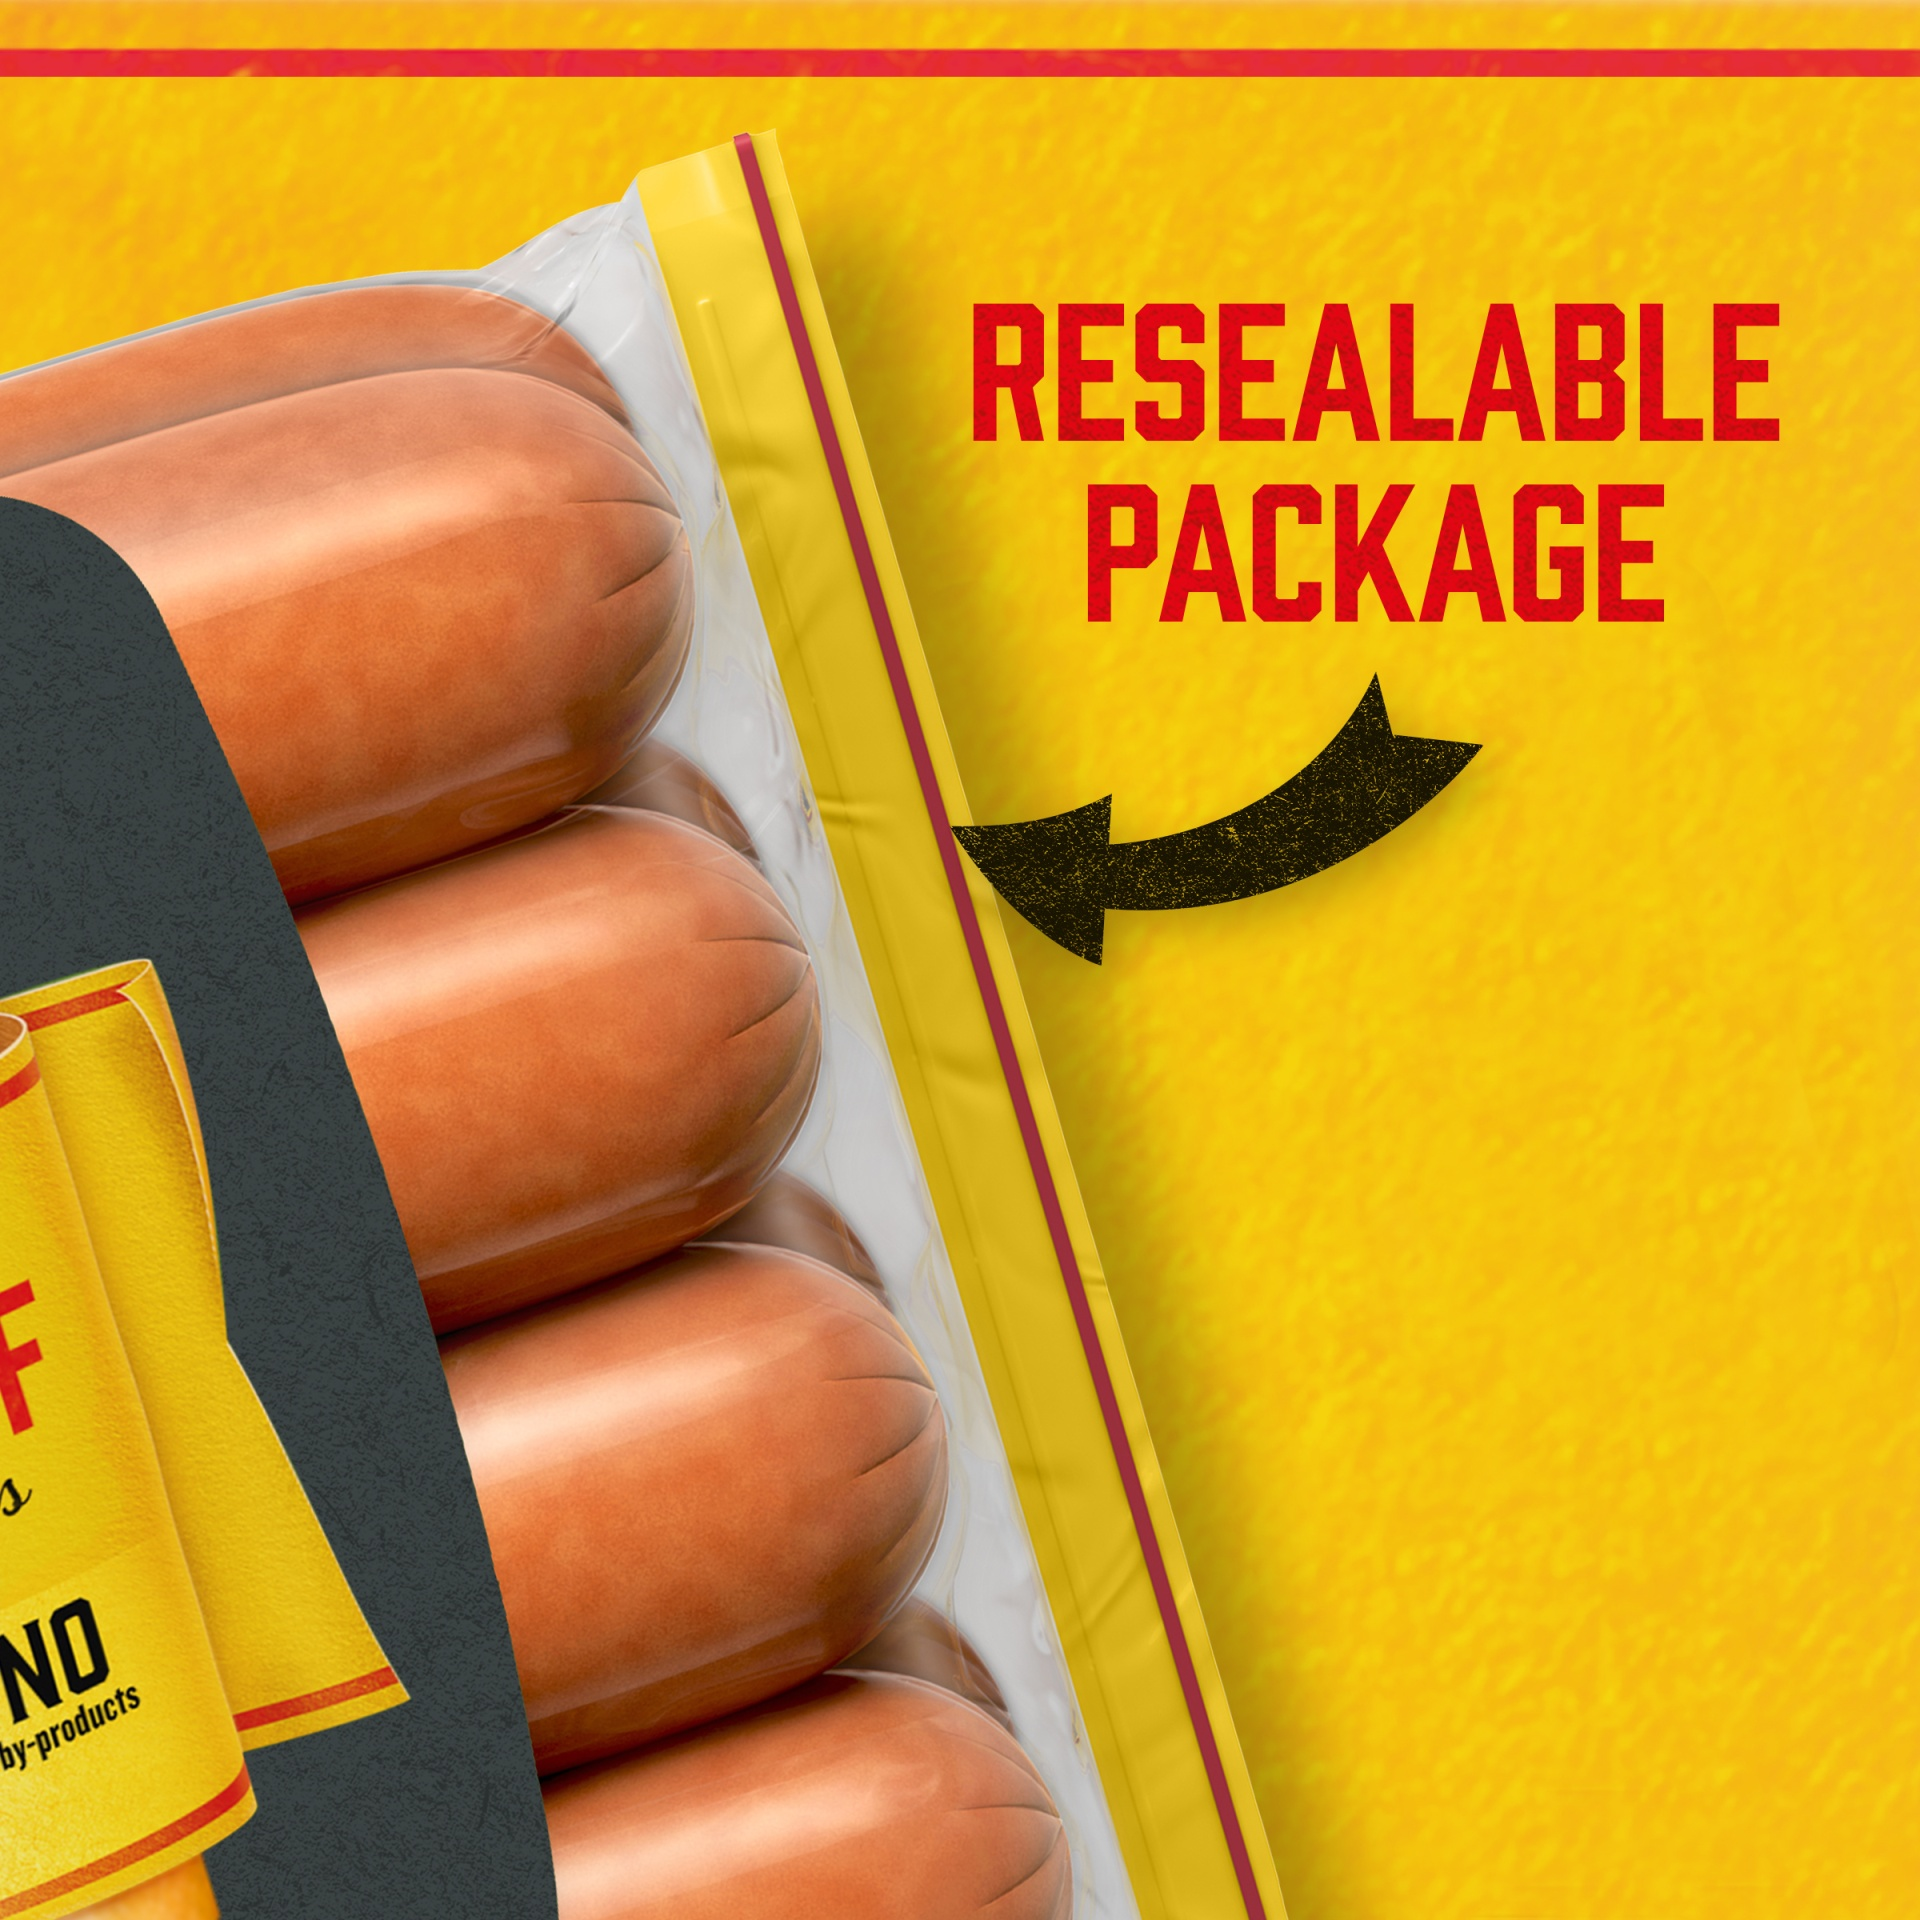 slide 4 of 13, Oscar Mayer Jumbo Angus Beef Uncured Franks 15 oz,